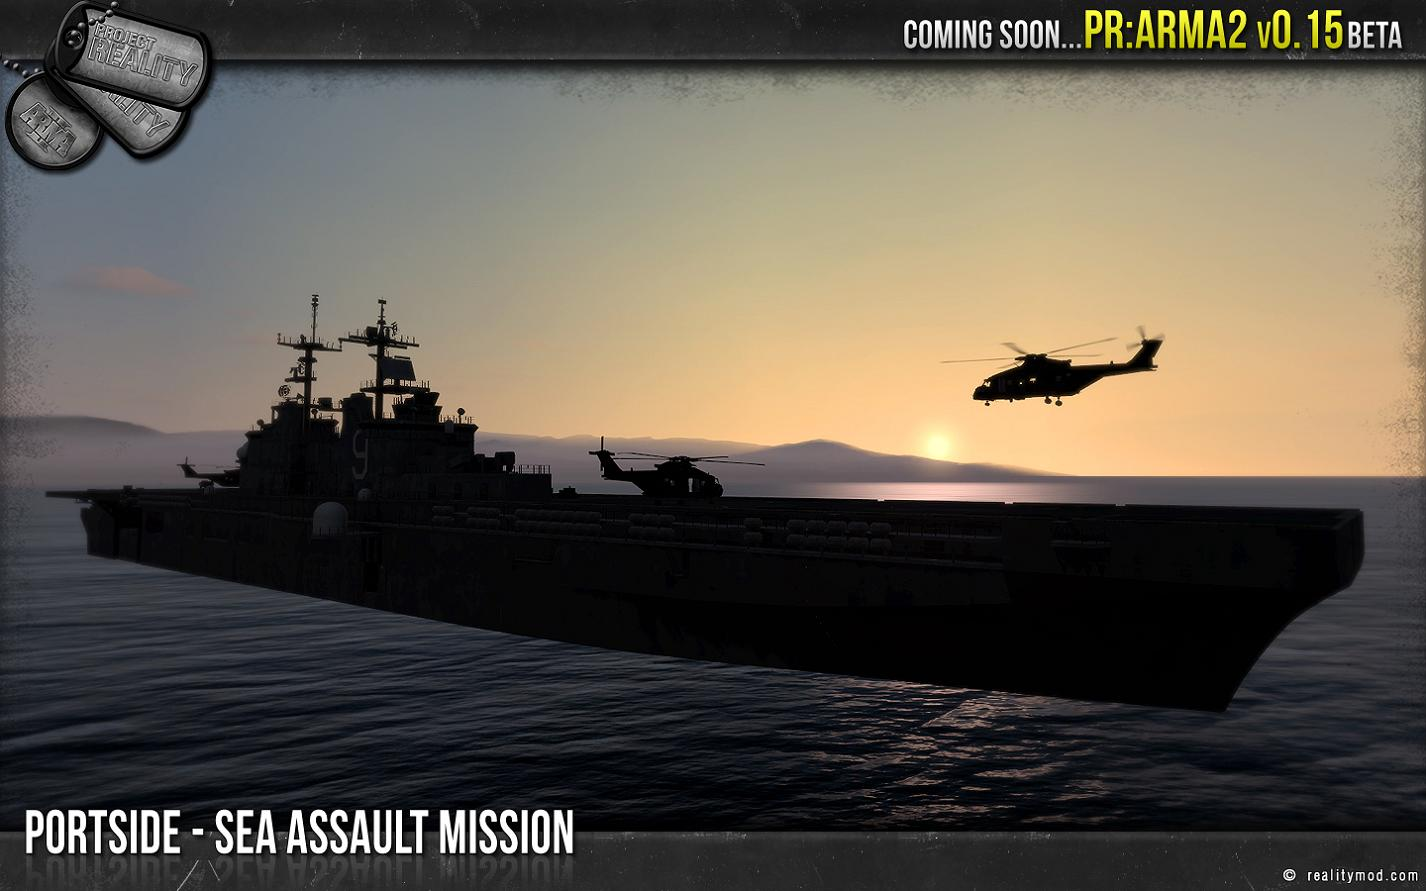 portside_sea_assault_mission.jpg